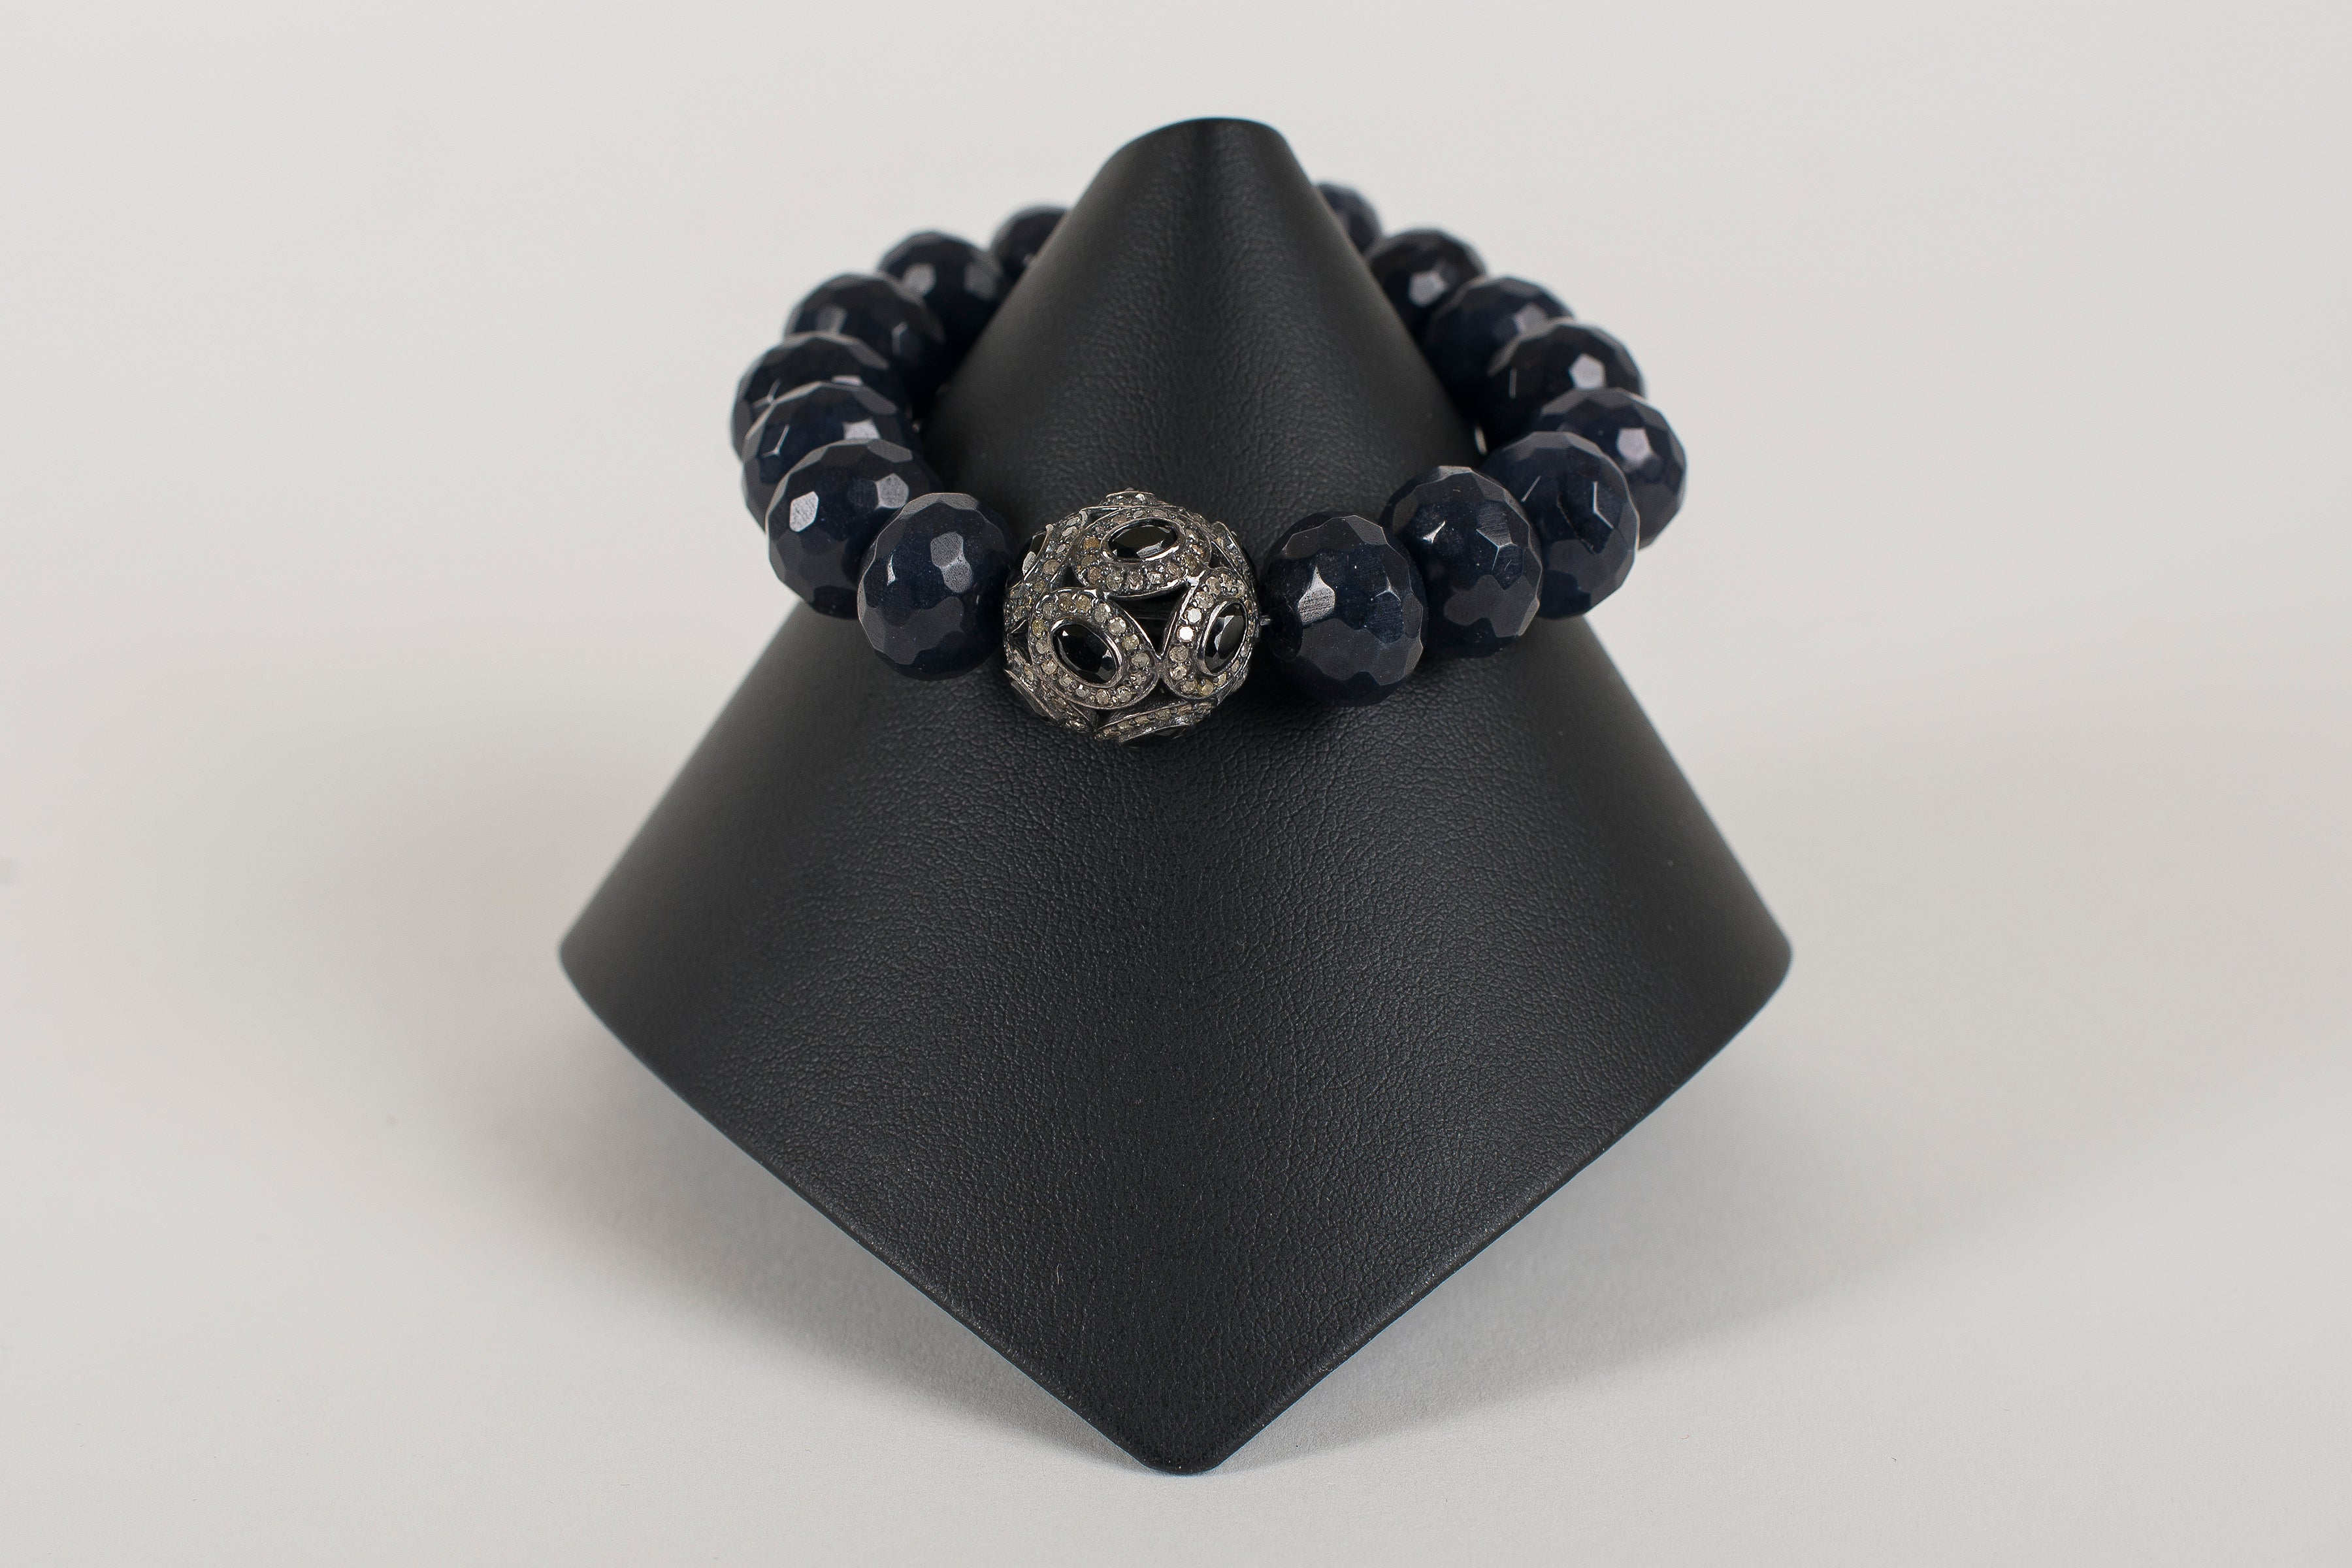 Faceted Navy Agate with Pave Diamond and Sapphire Focal Bead